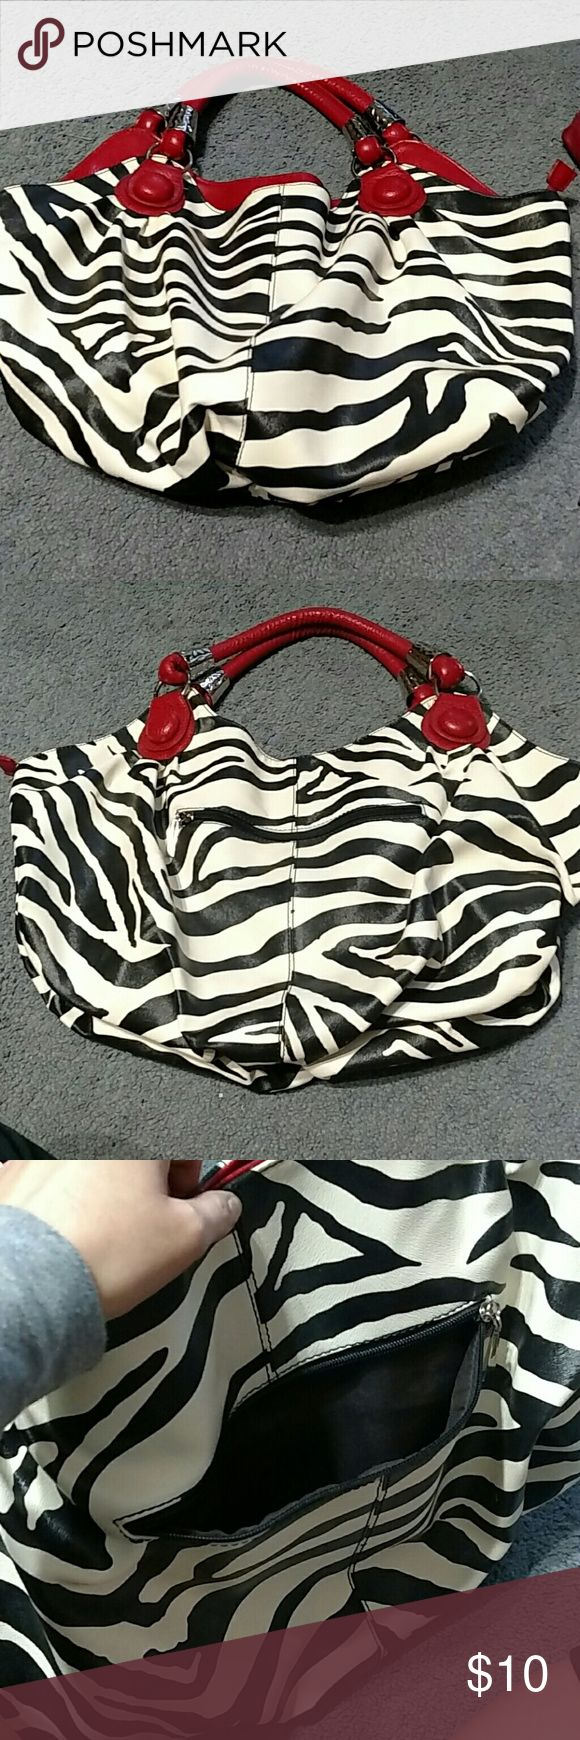 """Zebra Purse 1'9"""" wide, faux leather, fabric inside, black and white outside, dark brown and red inside & 4 pockets Bags Shoulder Bags"""